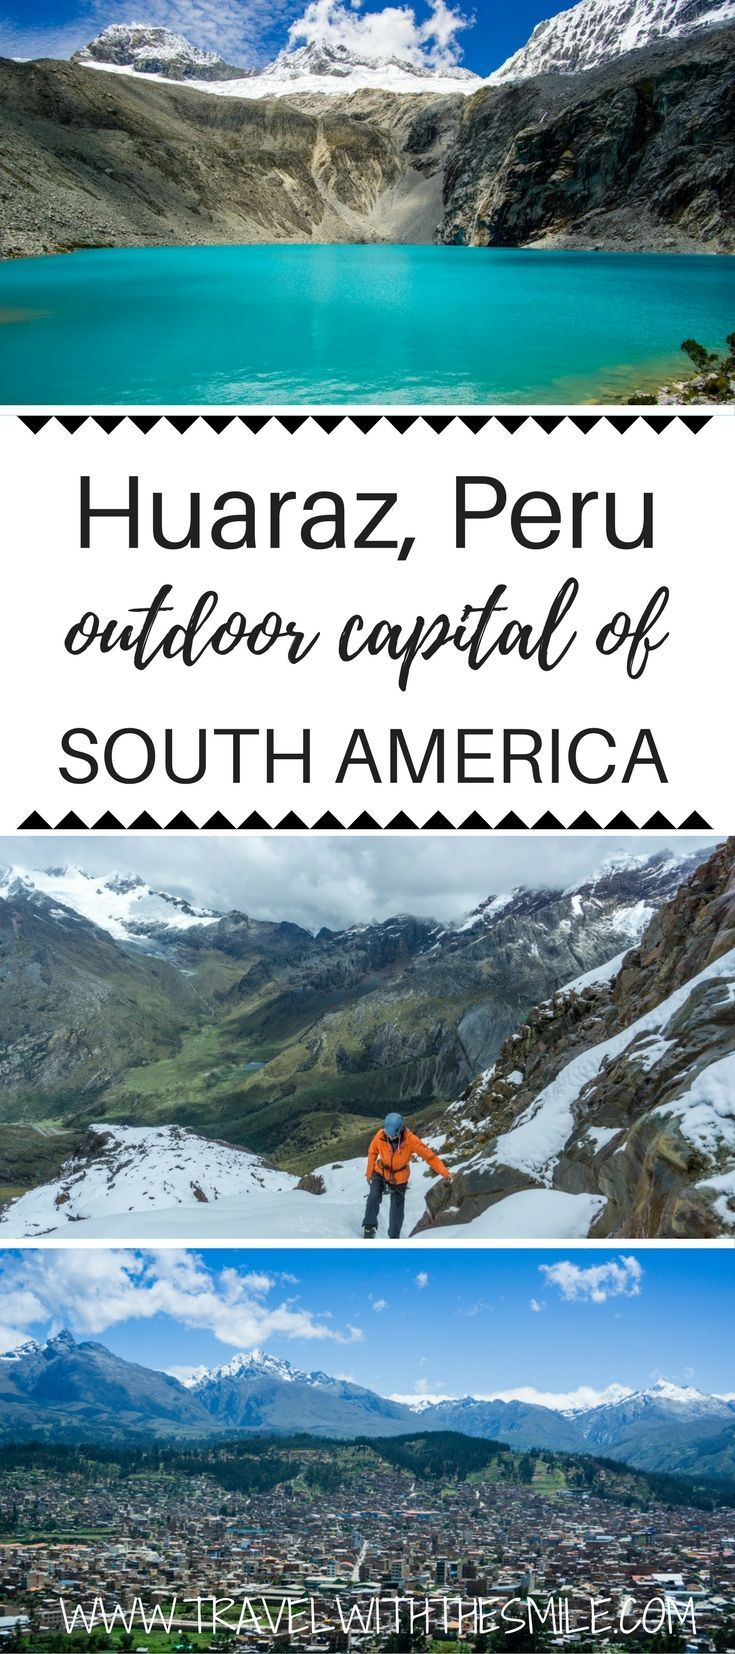 Everything you need to know about visiting Huaraz, Peru - outdoor capital of South America. Visit Huascarán National Park and enjoy Peruvian outdoors. Huaraz, Peru | Huascaran national park | Cordillera Blanca | what to do in Peru | Peru outdoors | trekking in Peru | hiking in Peru | best things to do in Peru | best things to do in South America | biking in Peru | #peru #southamerica